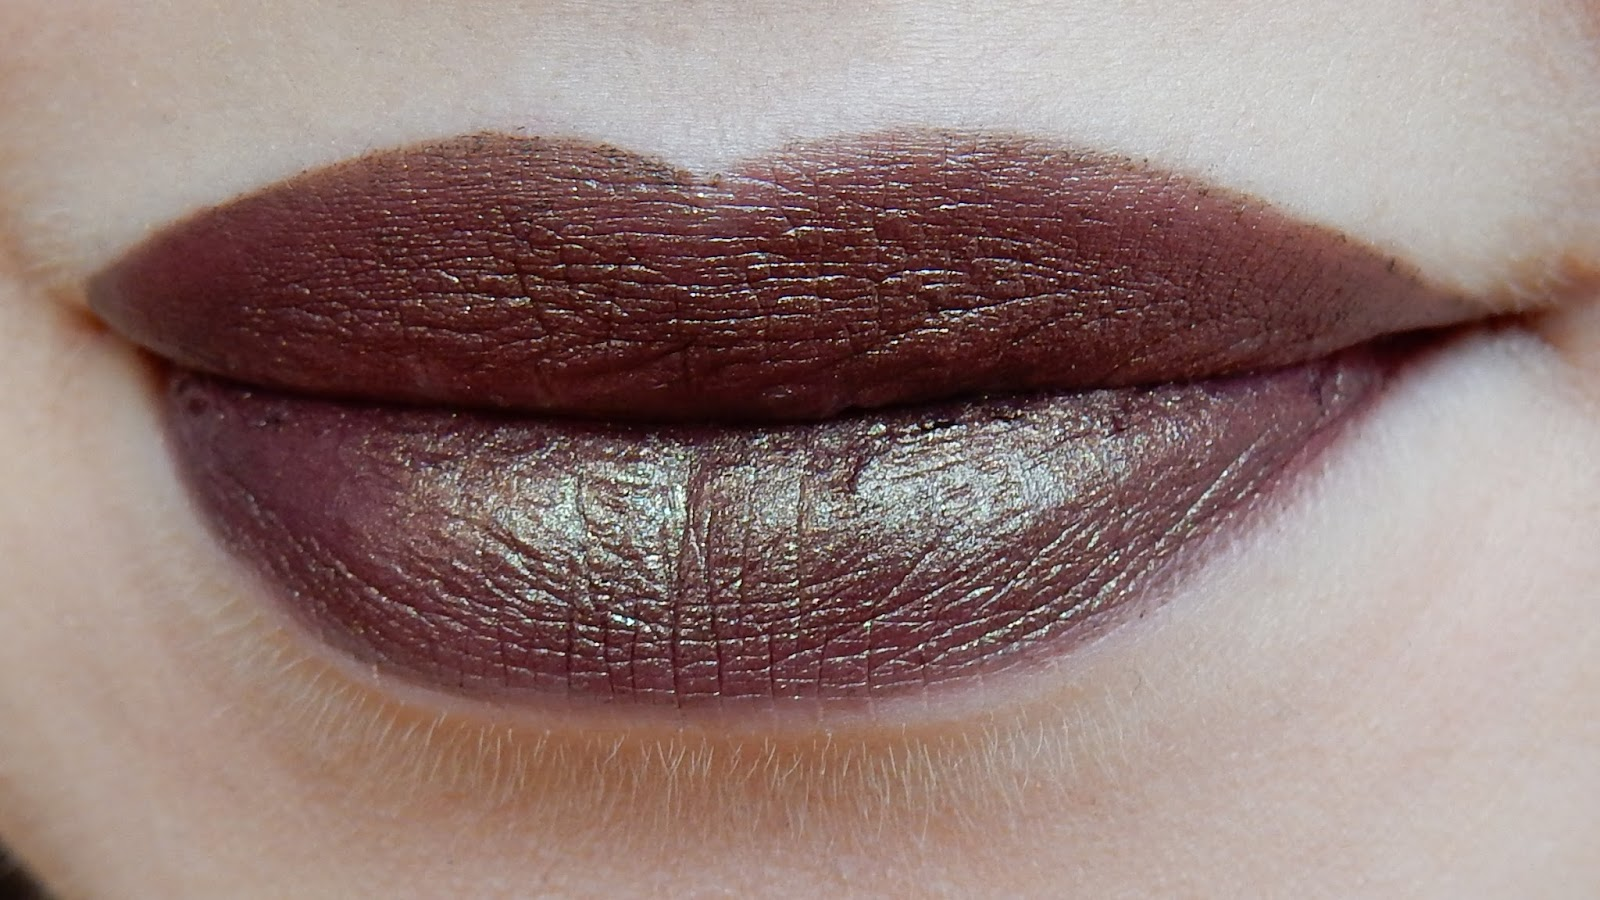 Lipstick Of The Month 2 Lime Crime Beetle Smoky Eyed Bloglovin